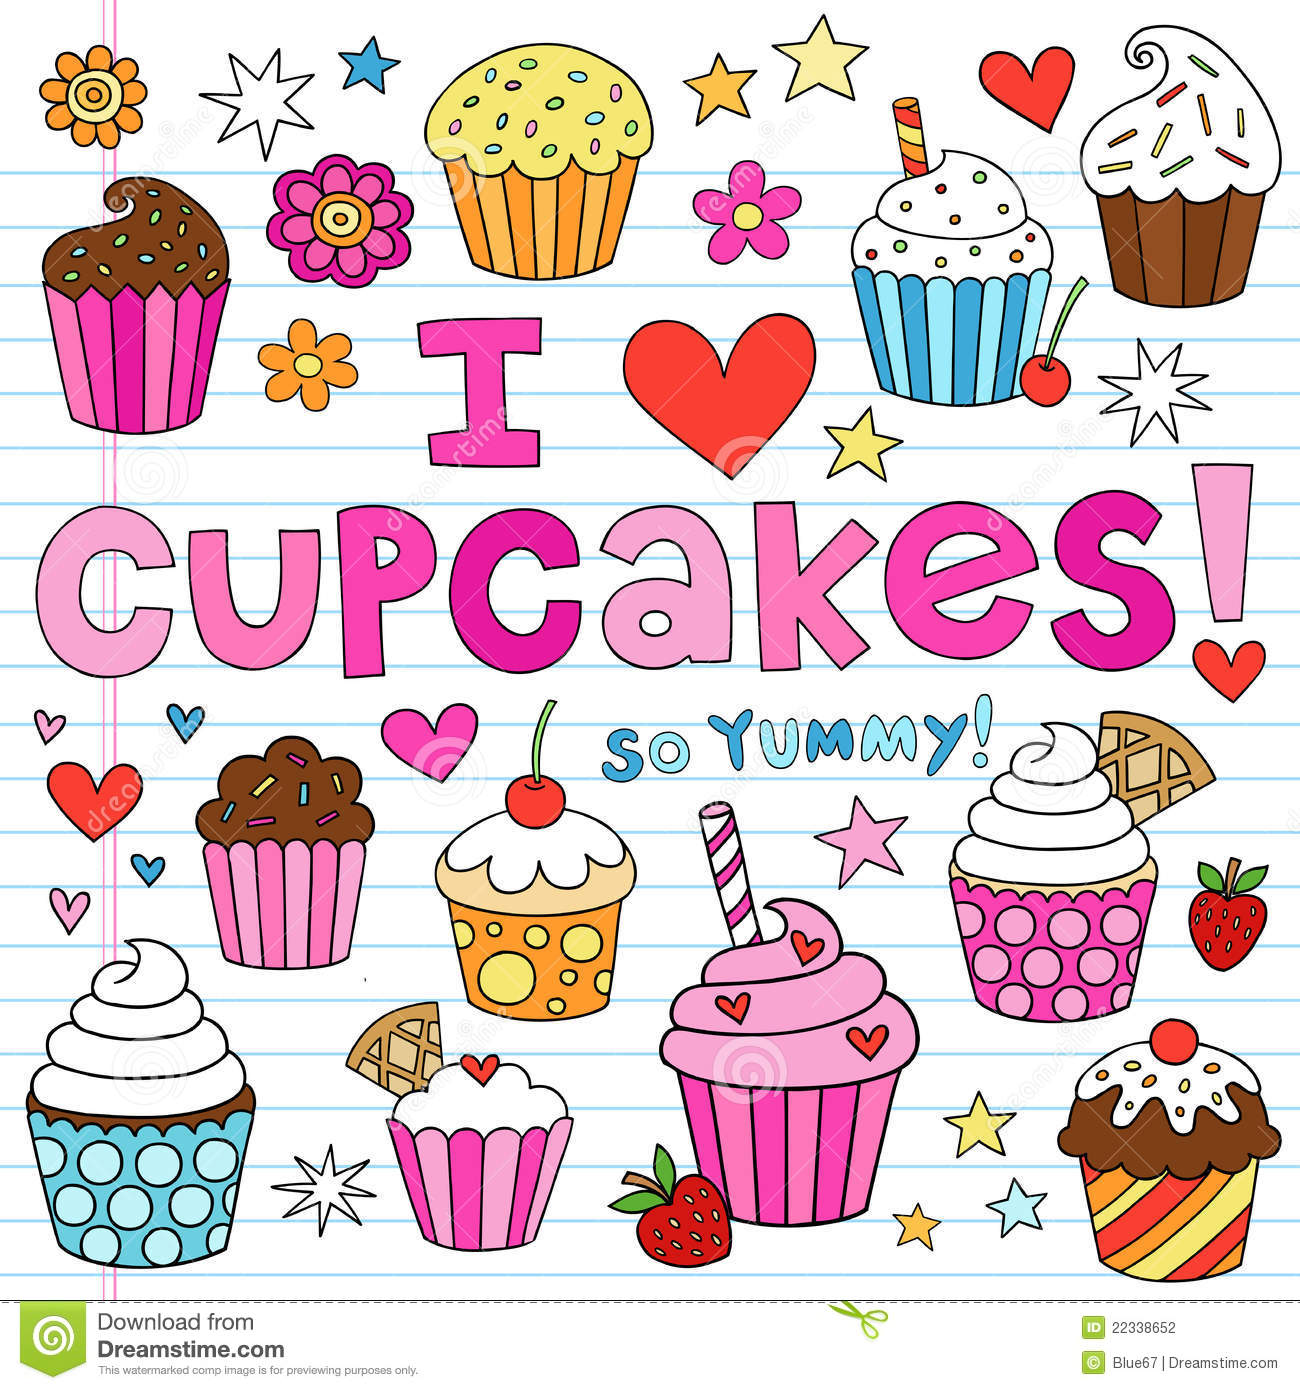 Cute Animated Cupcake Wallpaper I Love Cupcakes Notebook Doodles Vector Elements Stock